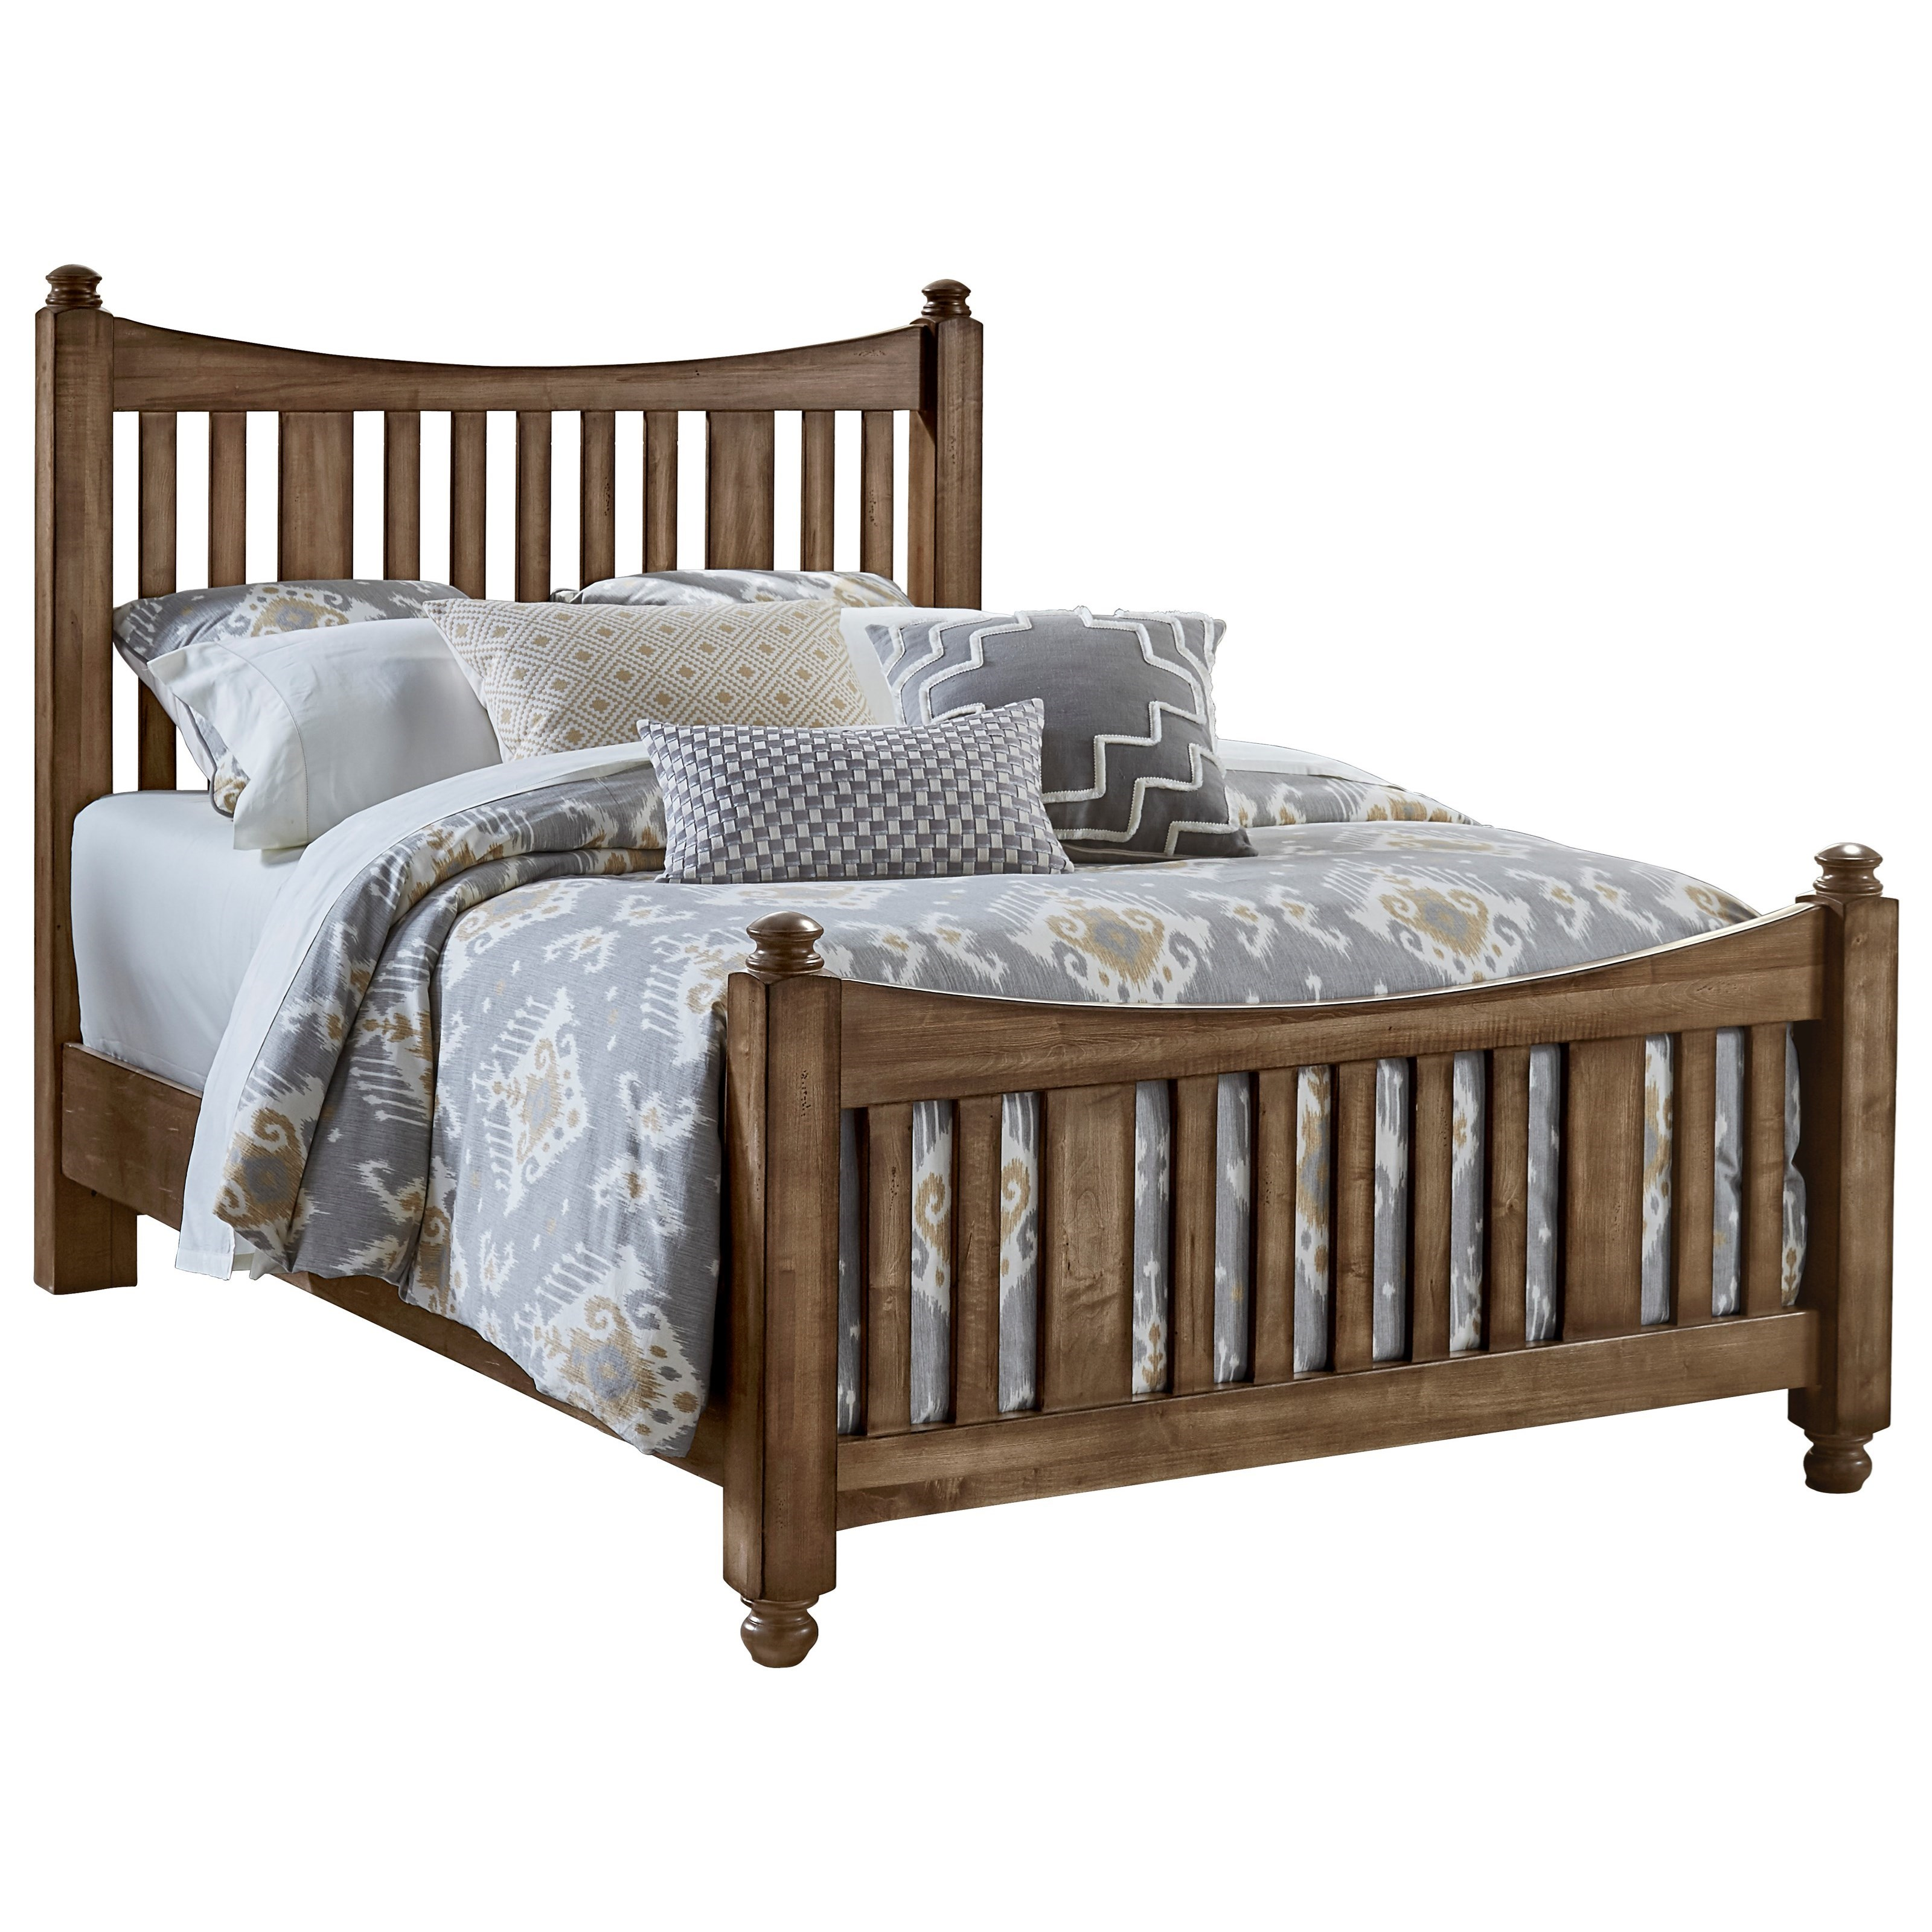 Artisan & Post Maple Road Queen Slat Poster Bed - Item Number: 117-558+855+722